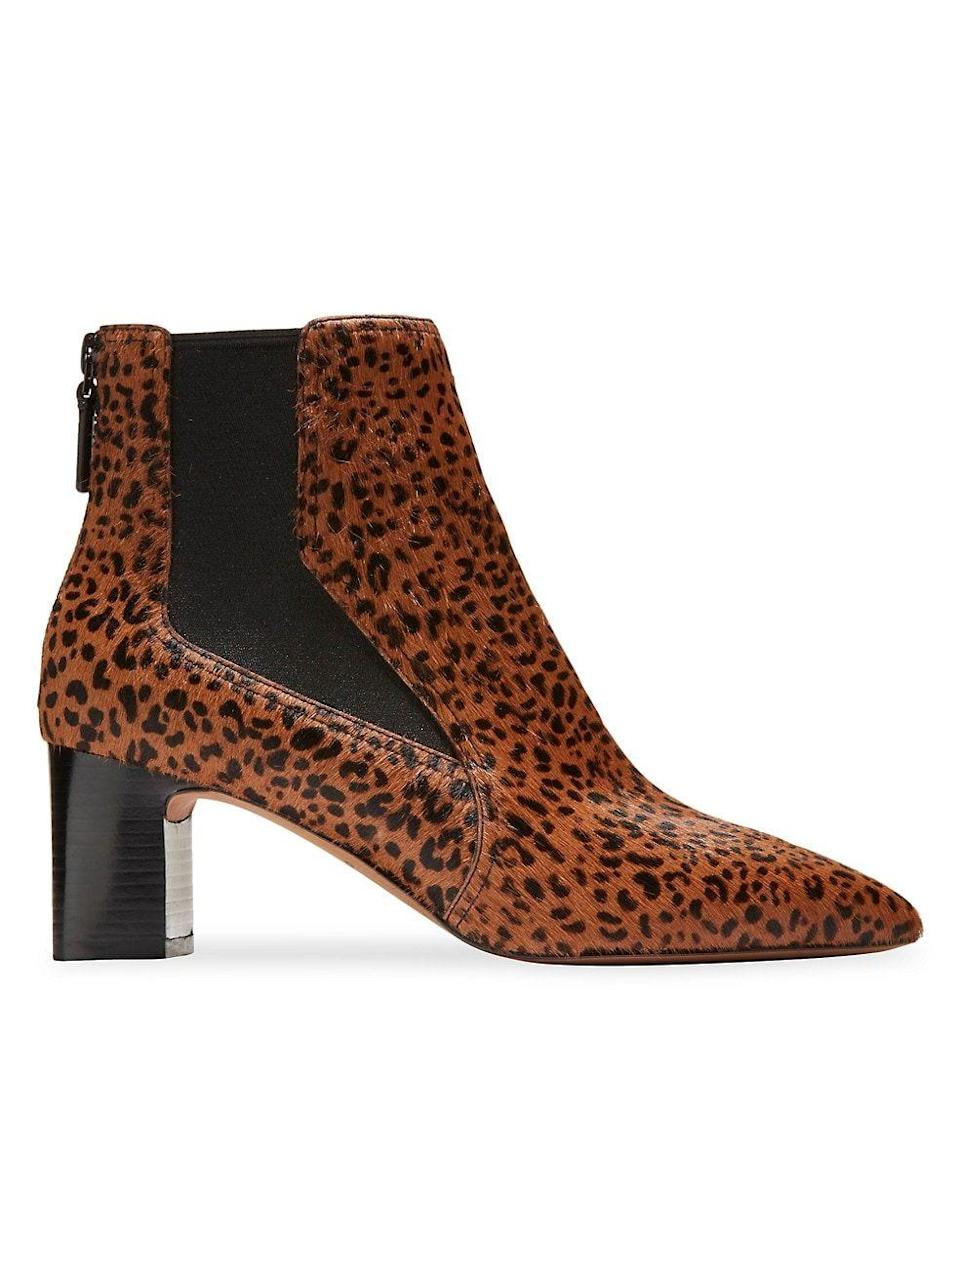 """<p><strong>Cole Haan</strong></p><p><strong>$280.00</strong></p><p><a href=""""https://go.redirectingat.com?id=74968X1596630&url=https%3A%2F%2Fwww.saksfifthavenue.com%2Fproduct%2Fcole-haan-etta-leopard-print-calf-hair-booties-0400014873991.html&sref=https%3A%2F%2Fwww.townandcountrymag.com%2Fstyle%2Ffashion-trends%2Fg28225508%2Ffall-boots%2F"""" rel=""""nofollow noopener"""" target=""""_blank"""" data-ylk=""""slk:Shop Now"""" class=""""link rapid-noclick-resp"""">Shop Now</a></p><p>Animal print is a perfect more-exciting-than-neutral answer to neutral booties. </p>"""